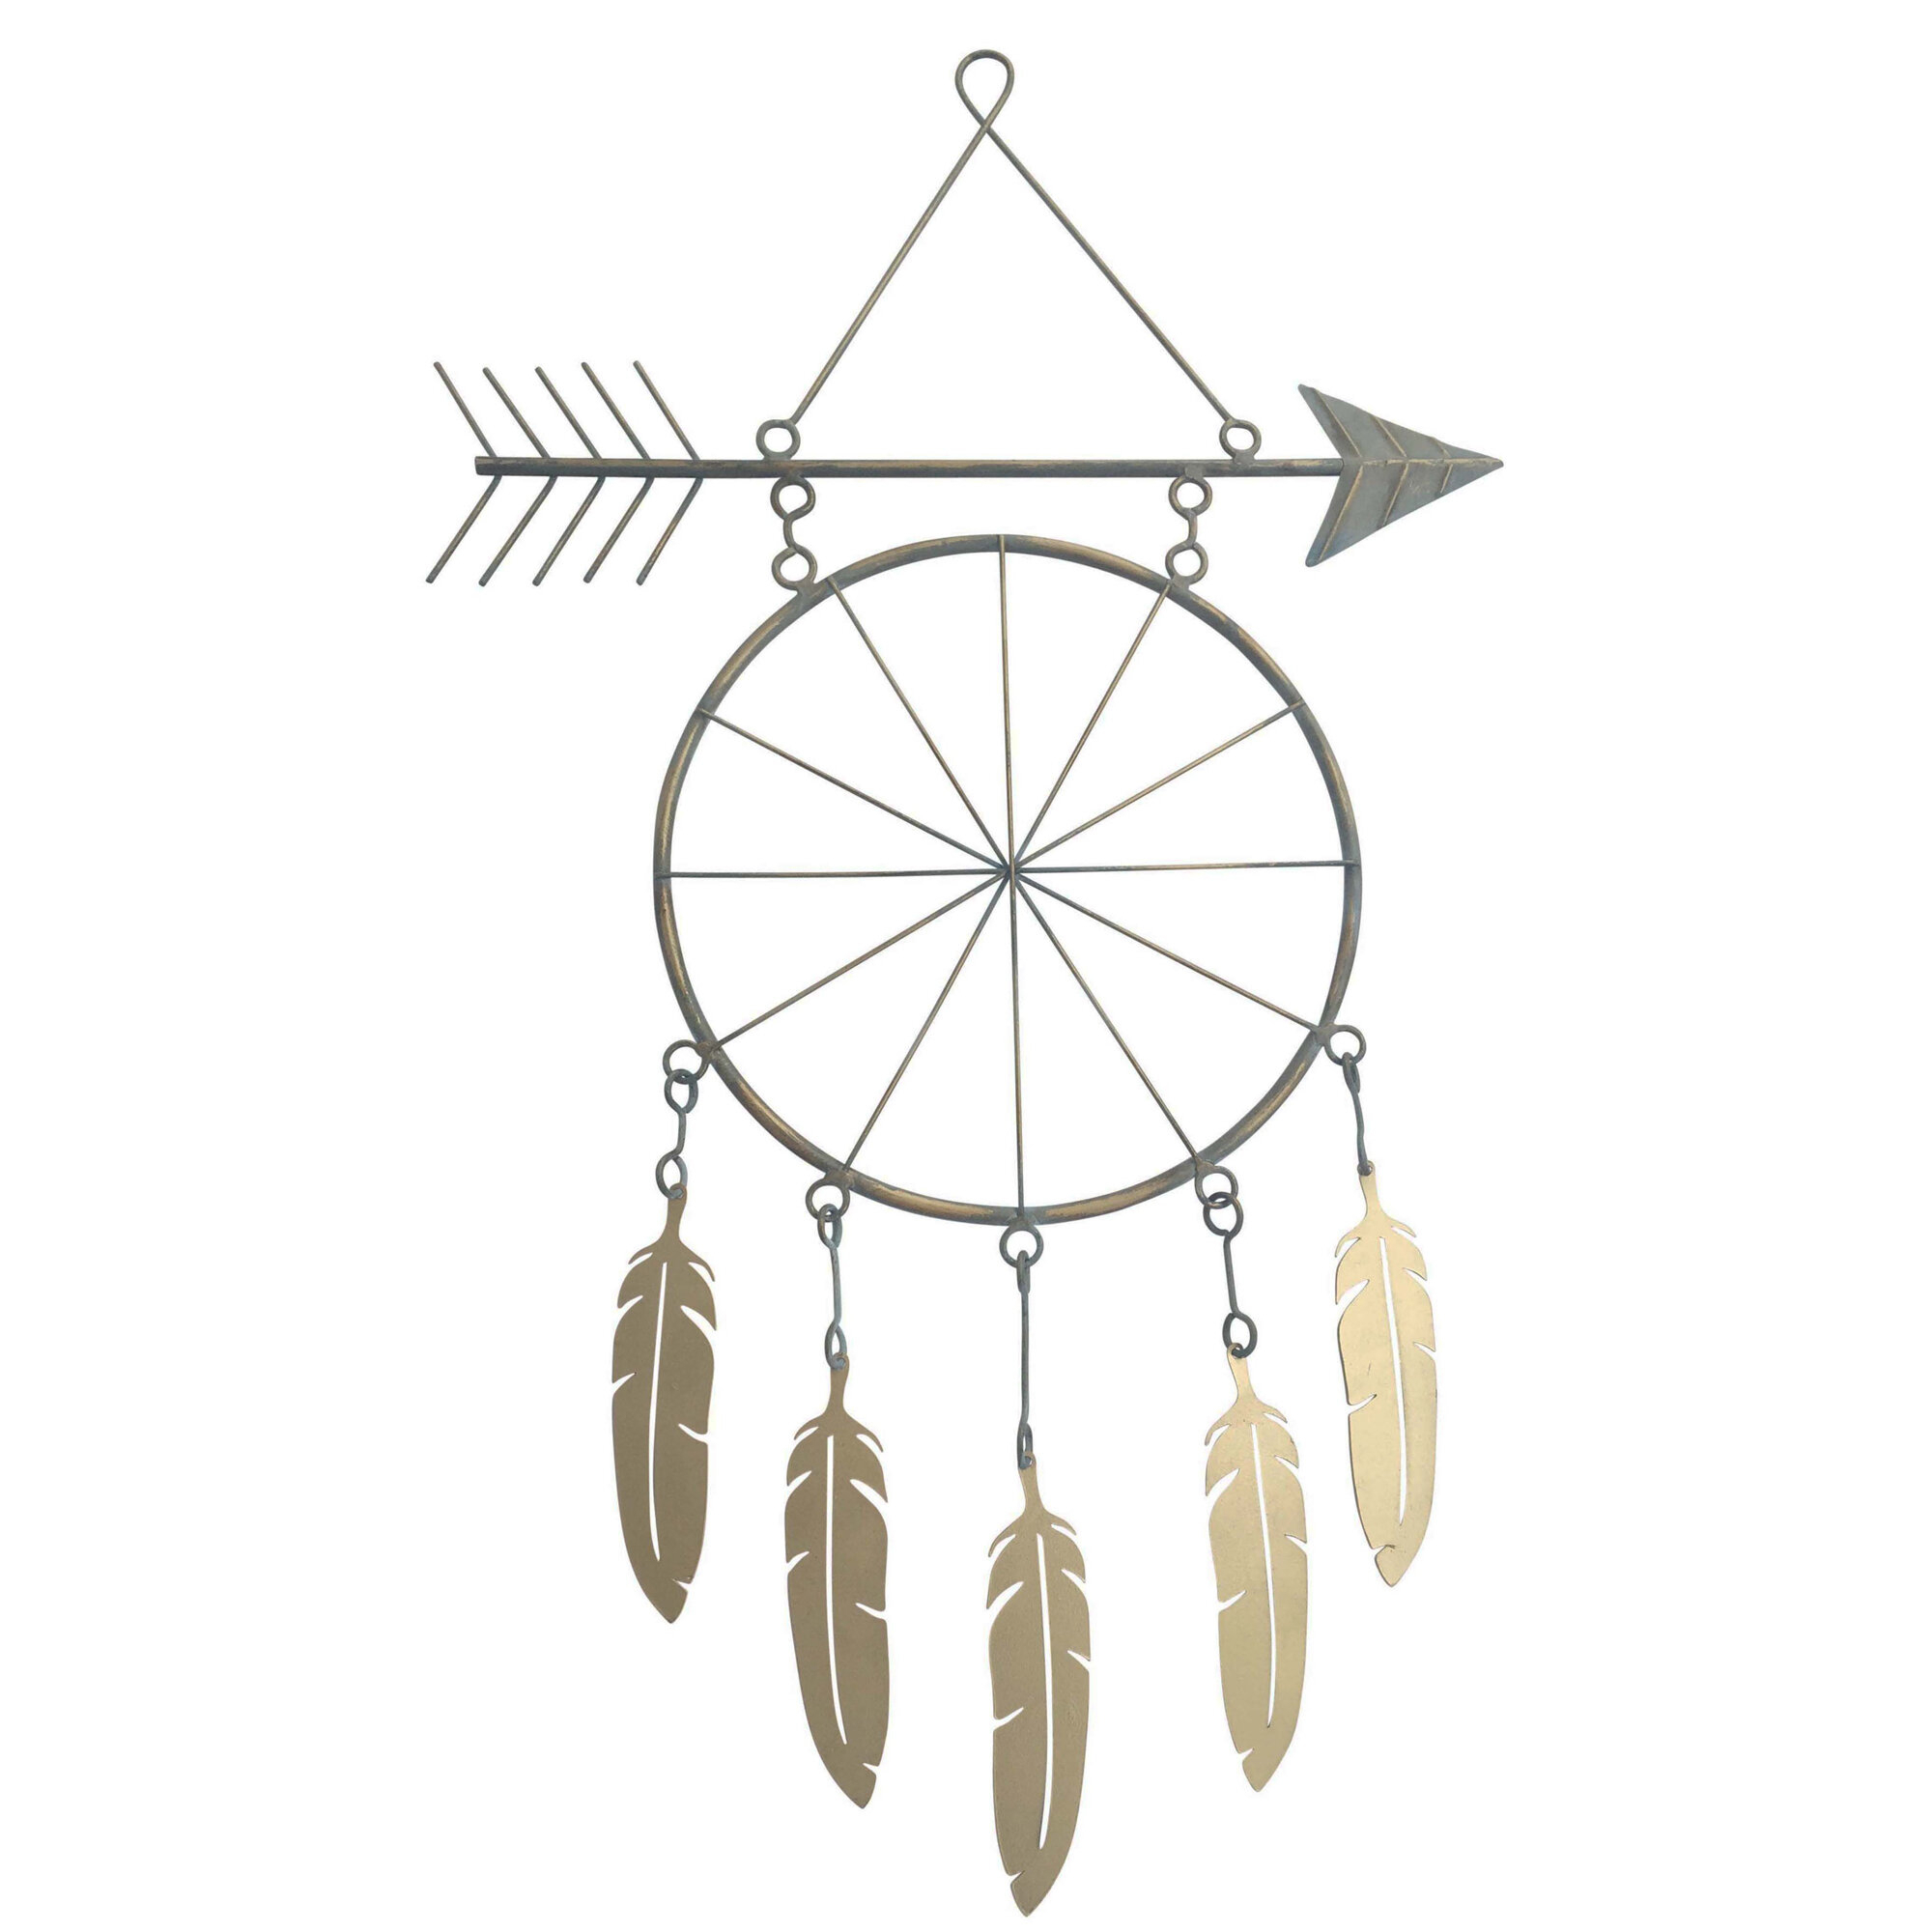 Brown Metal Tribal Arrow Wall Decor Regarding 2020 Metal Arrow And Feather Wall Décor & Reviews (View 15 of 20)